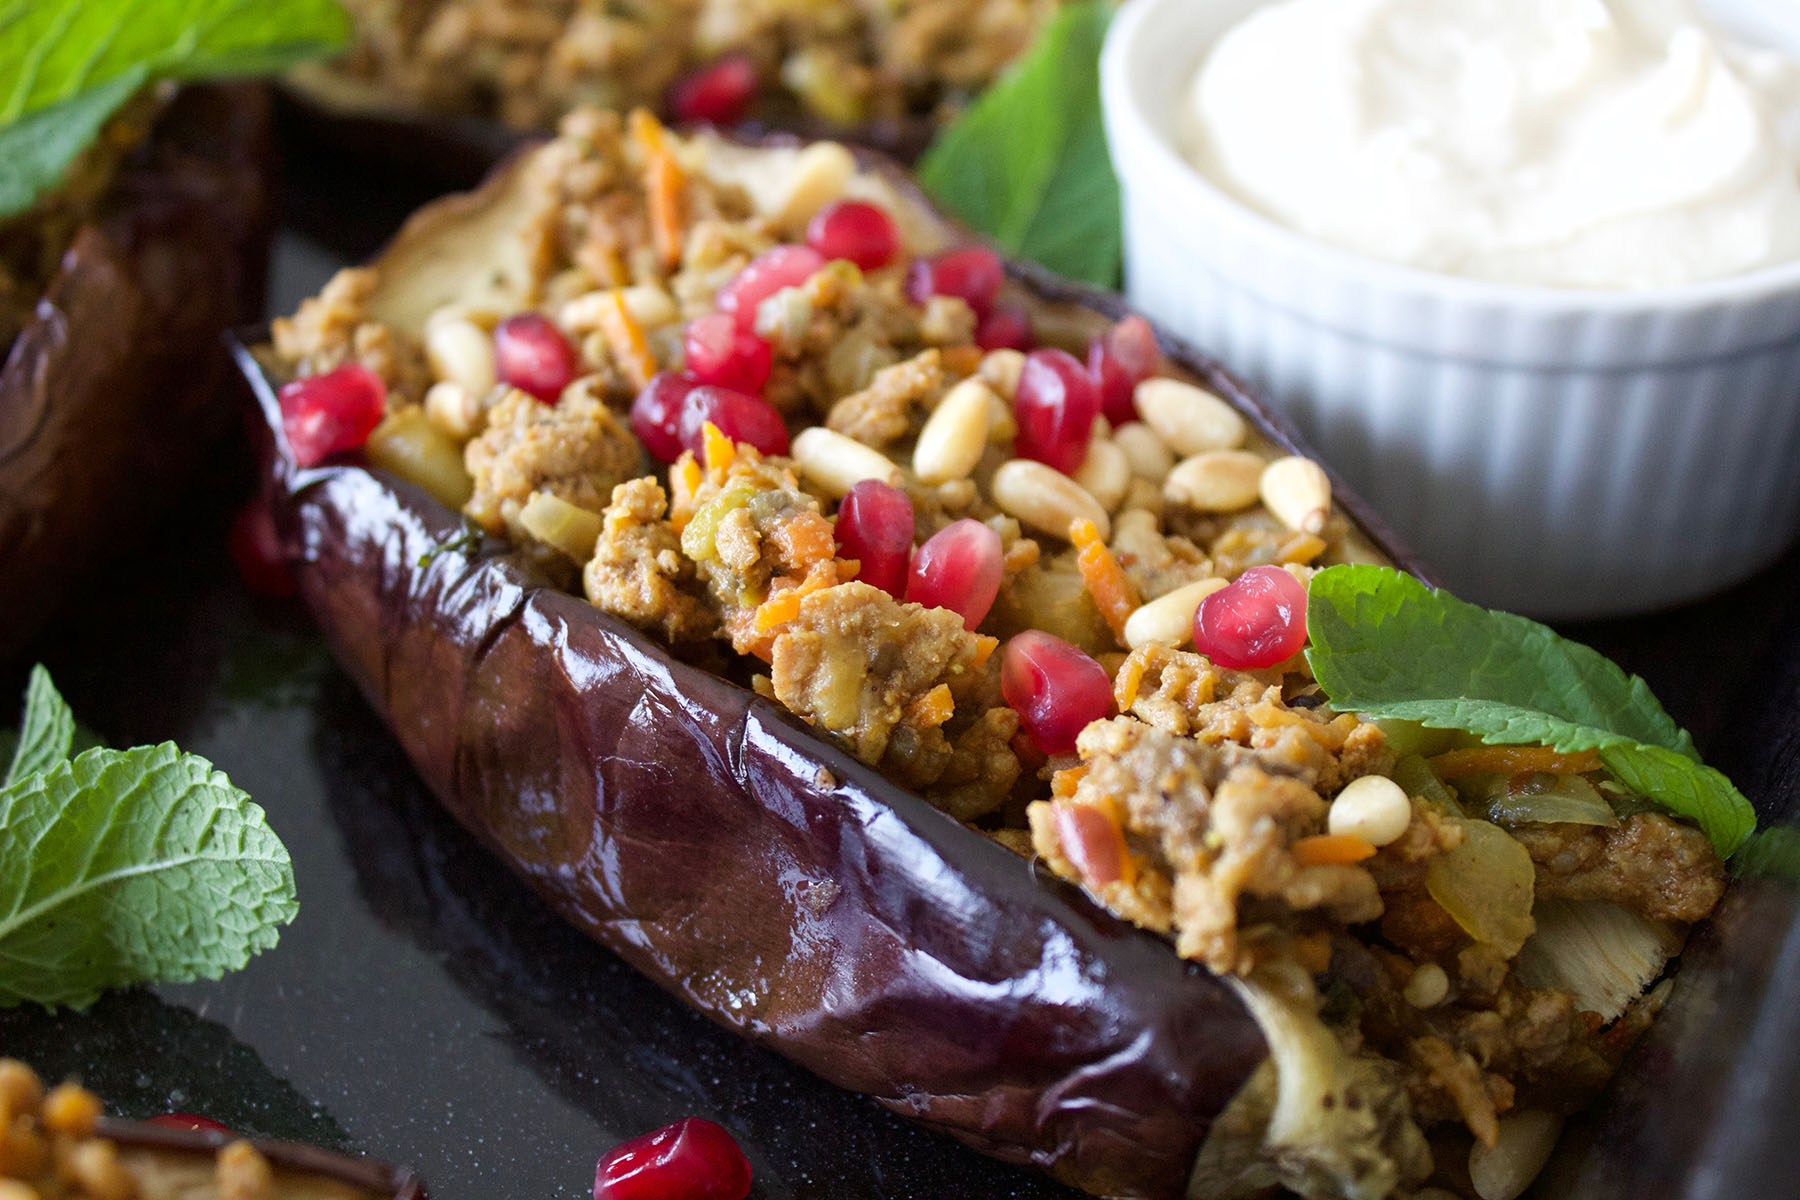 Moroccan style roasted aubergine